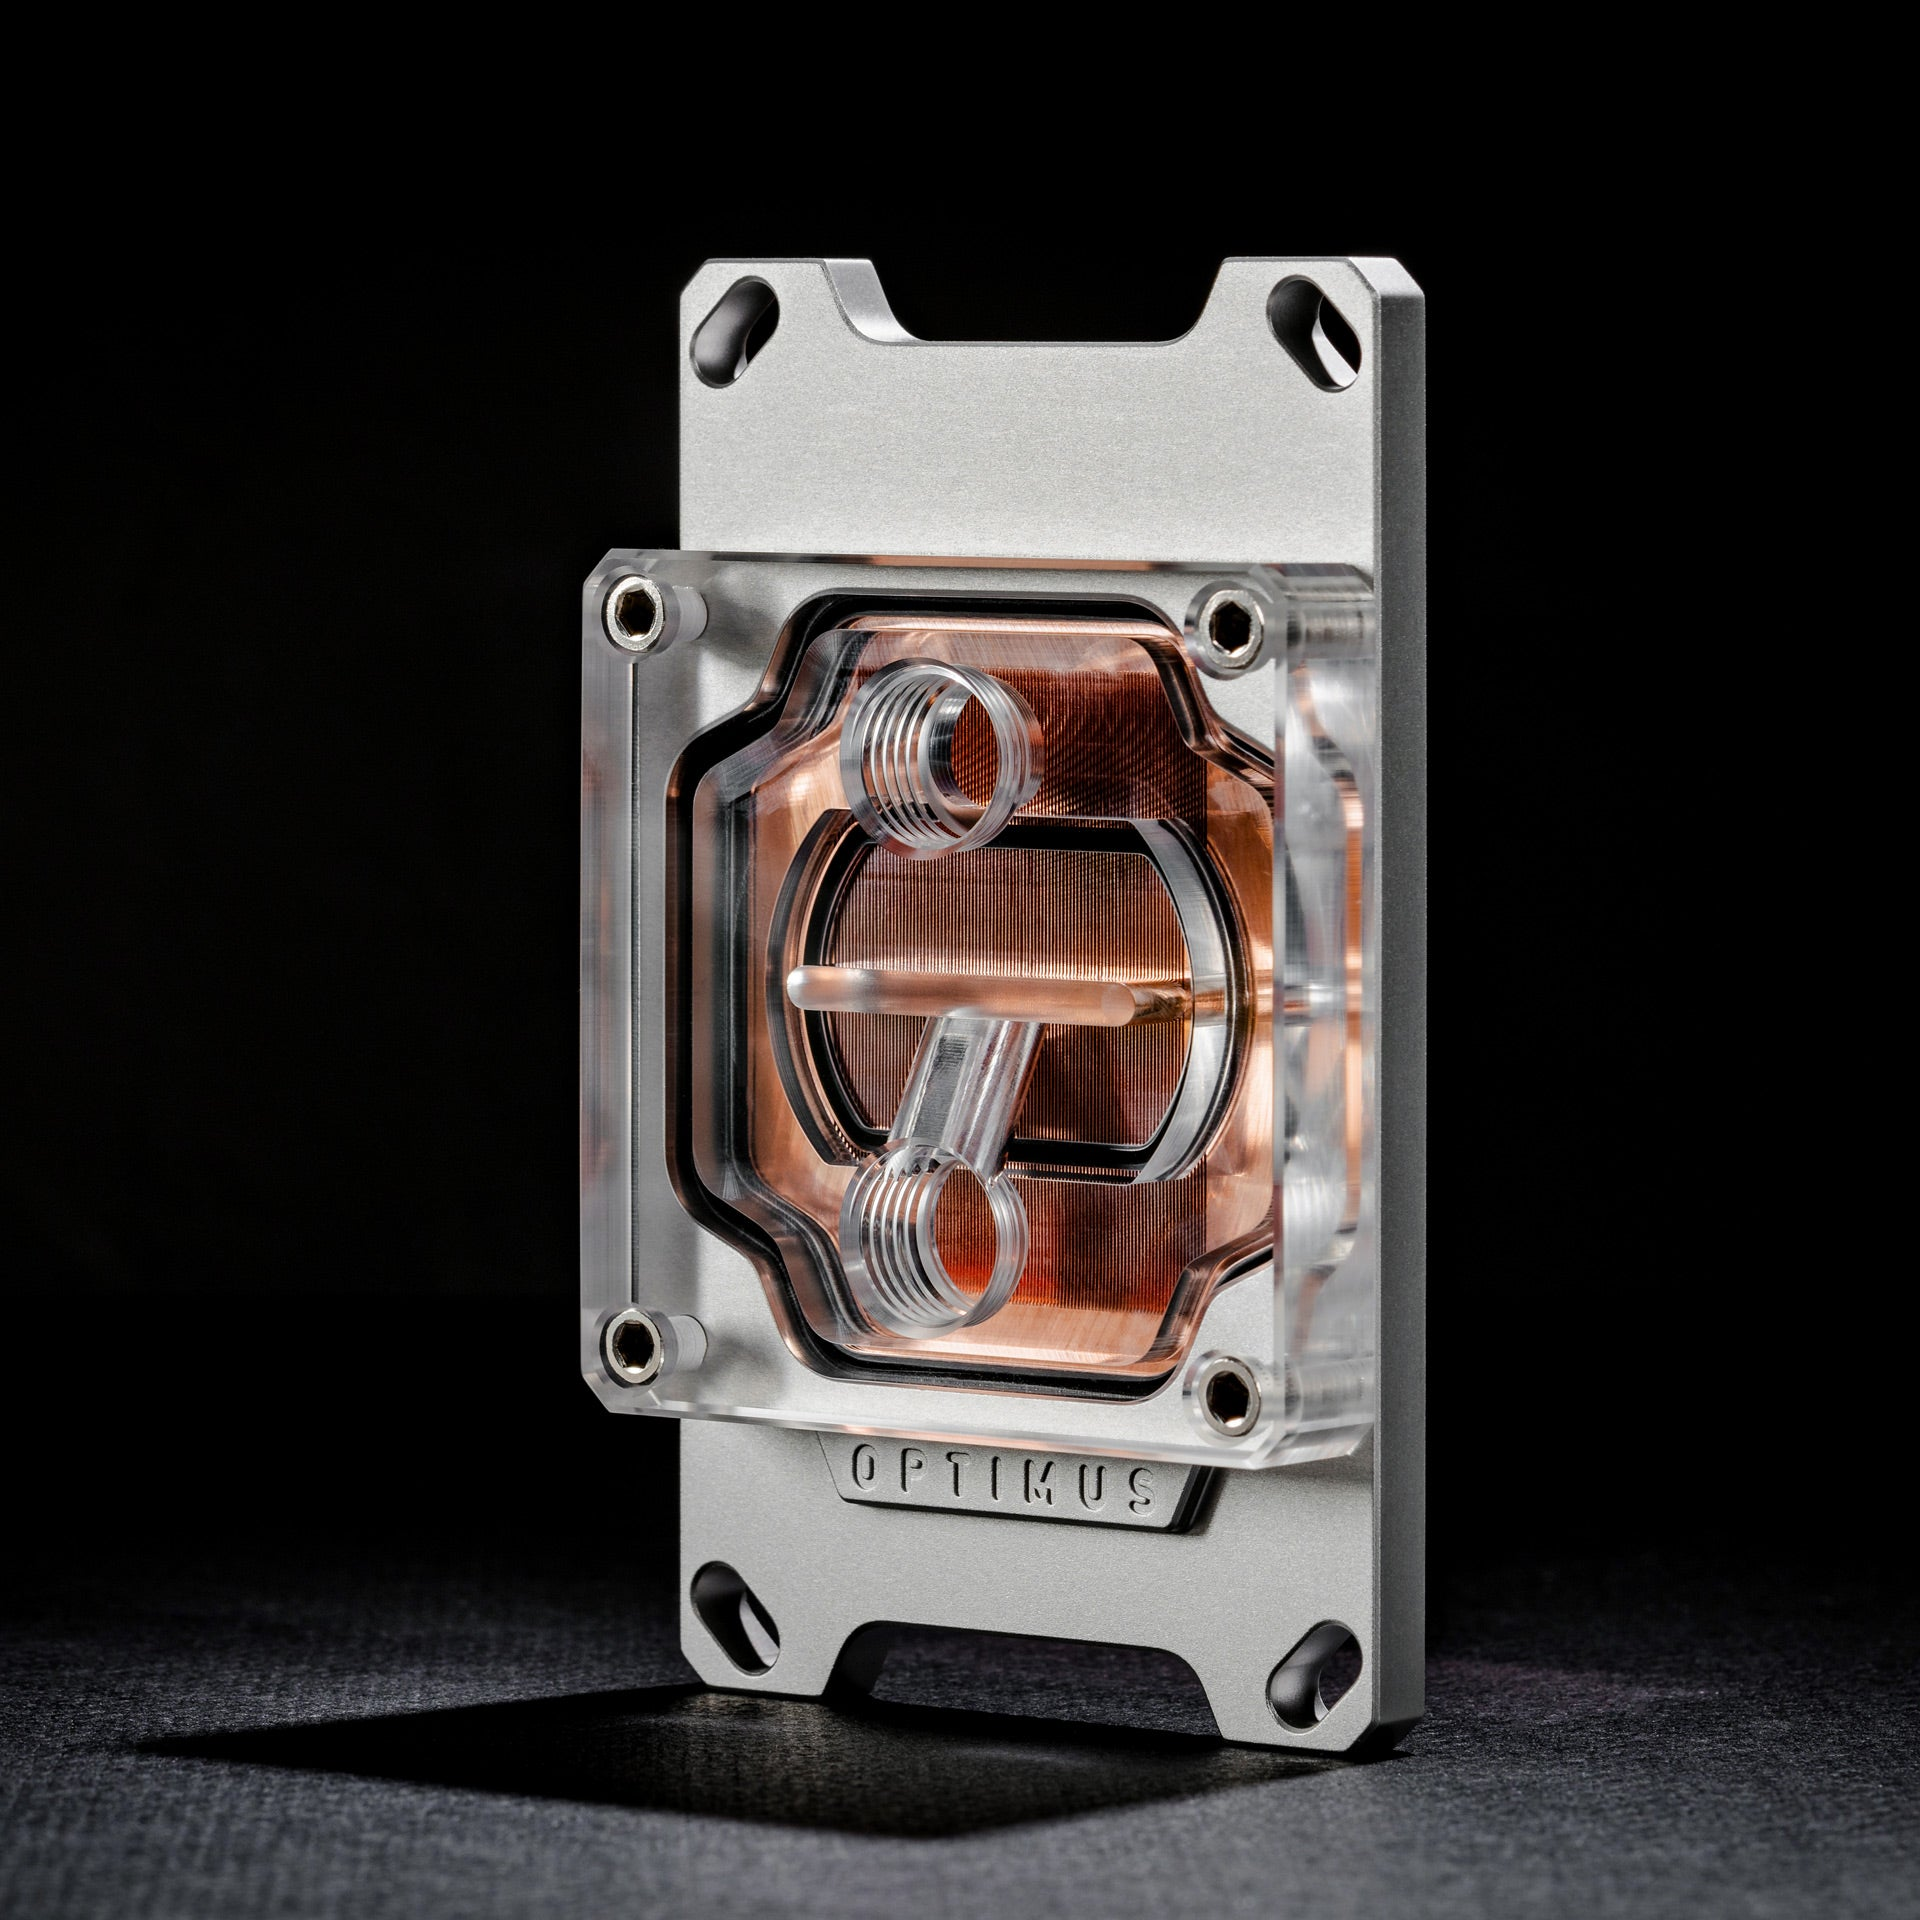 BLEMISH - Foundation CPU Block - AMD